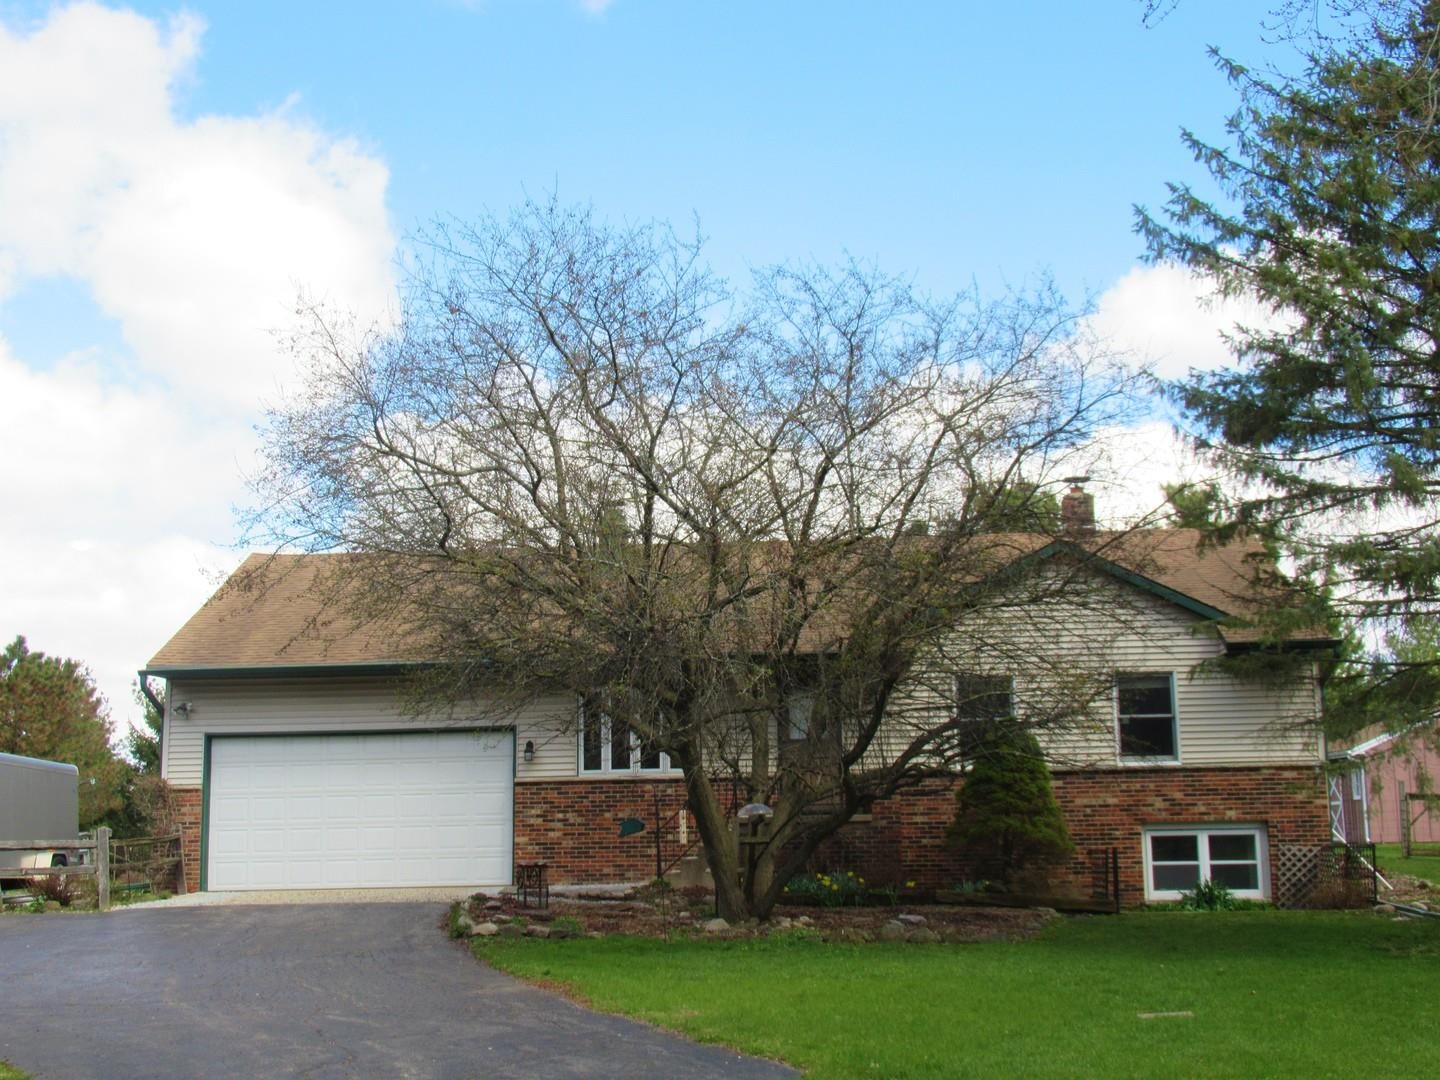 20726 Ridgeview Lane, Marengo, IL 60152 - #: 10691596